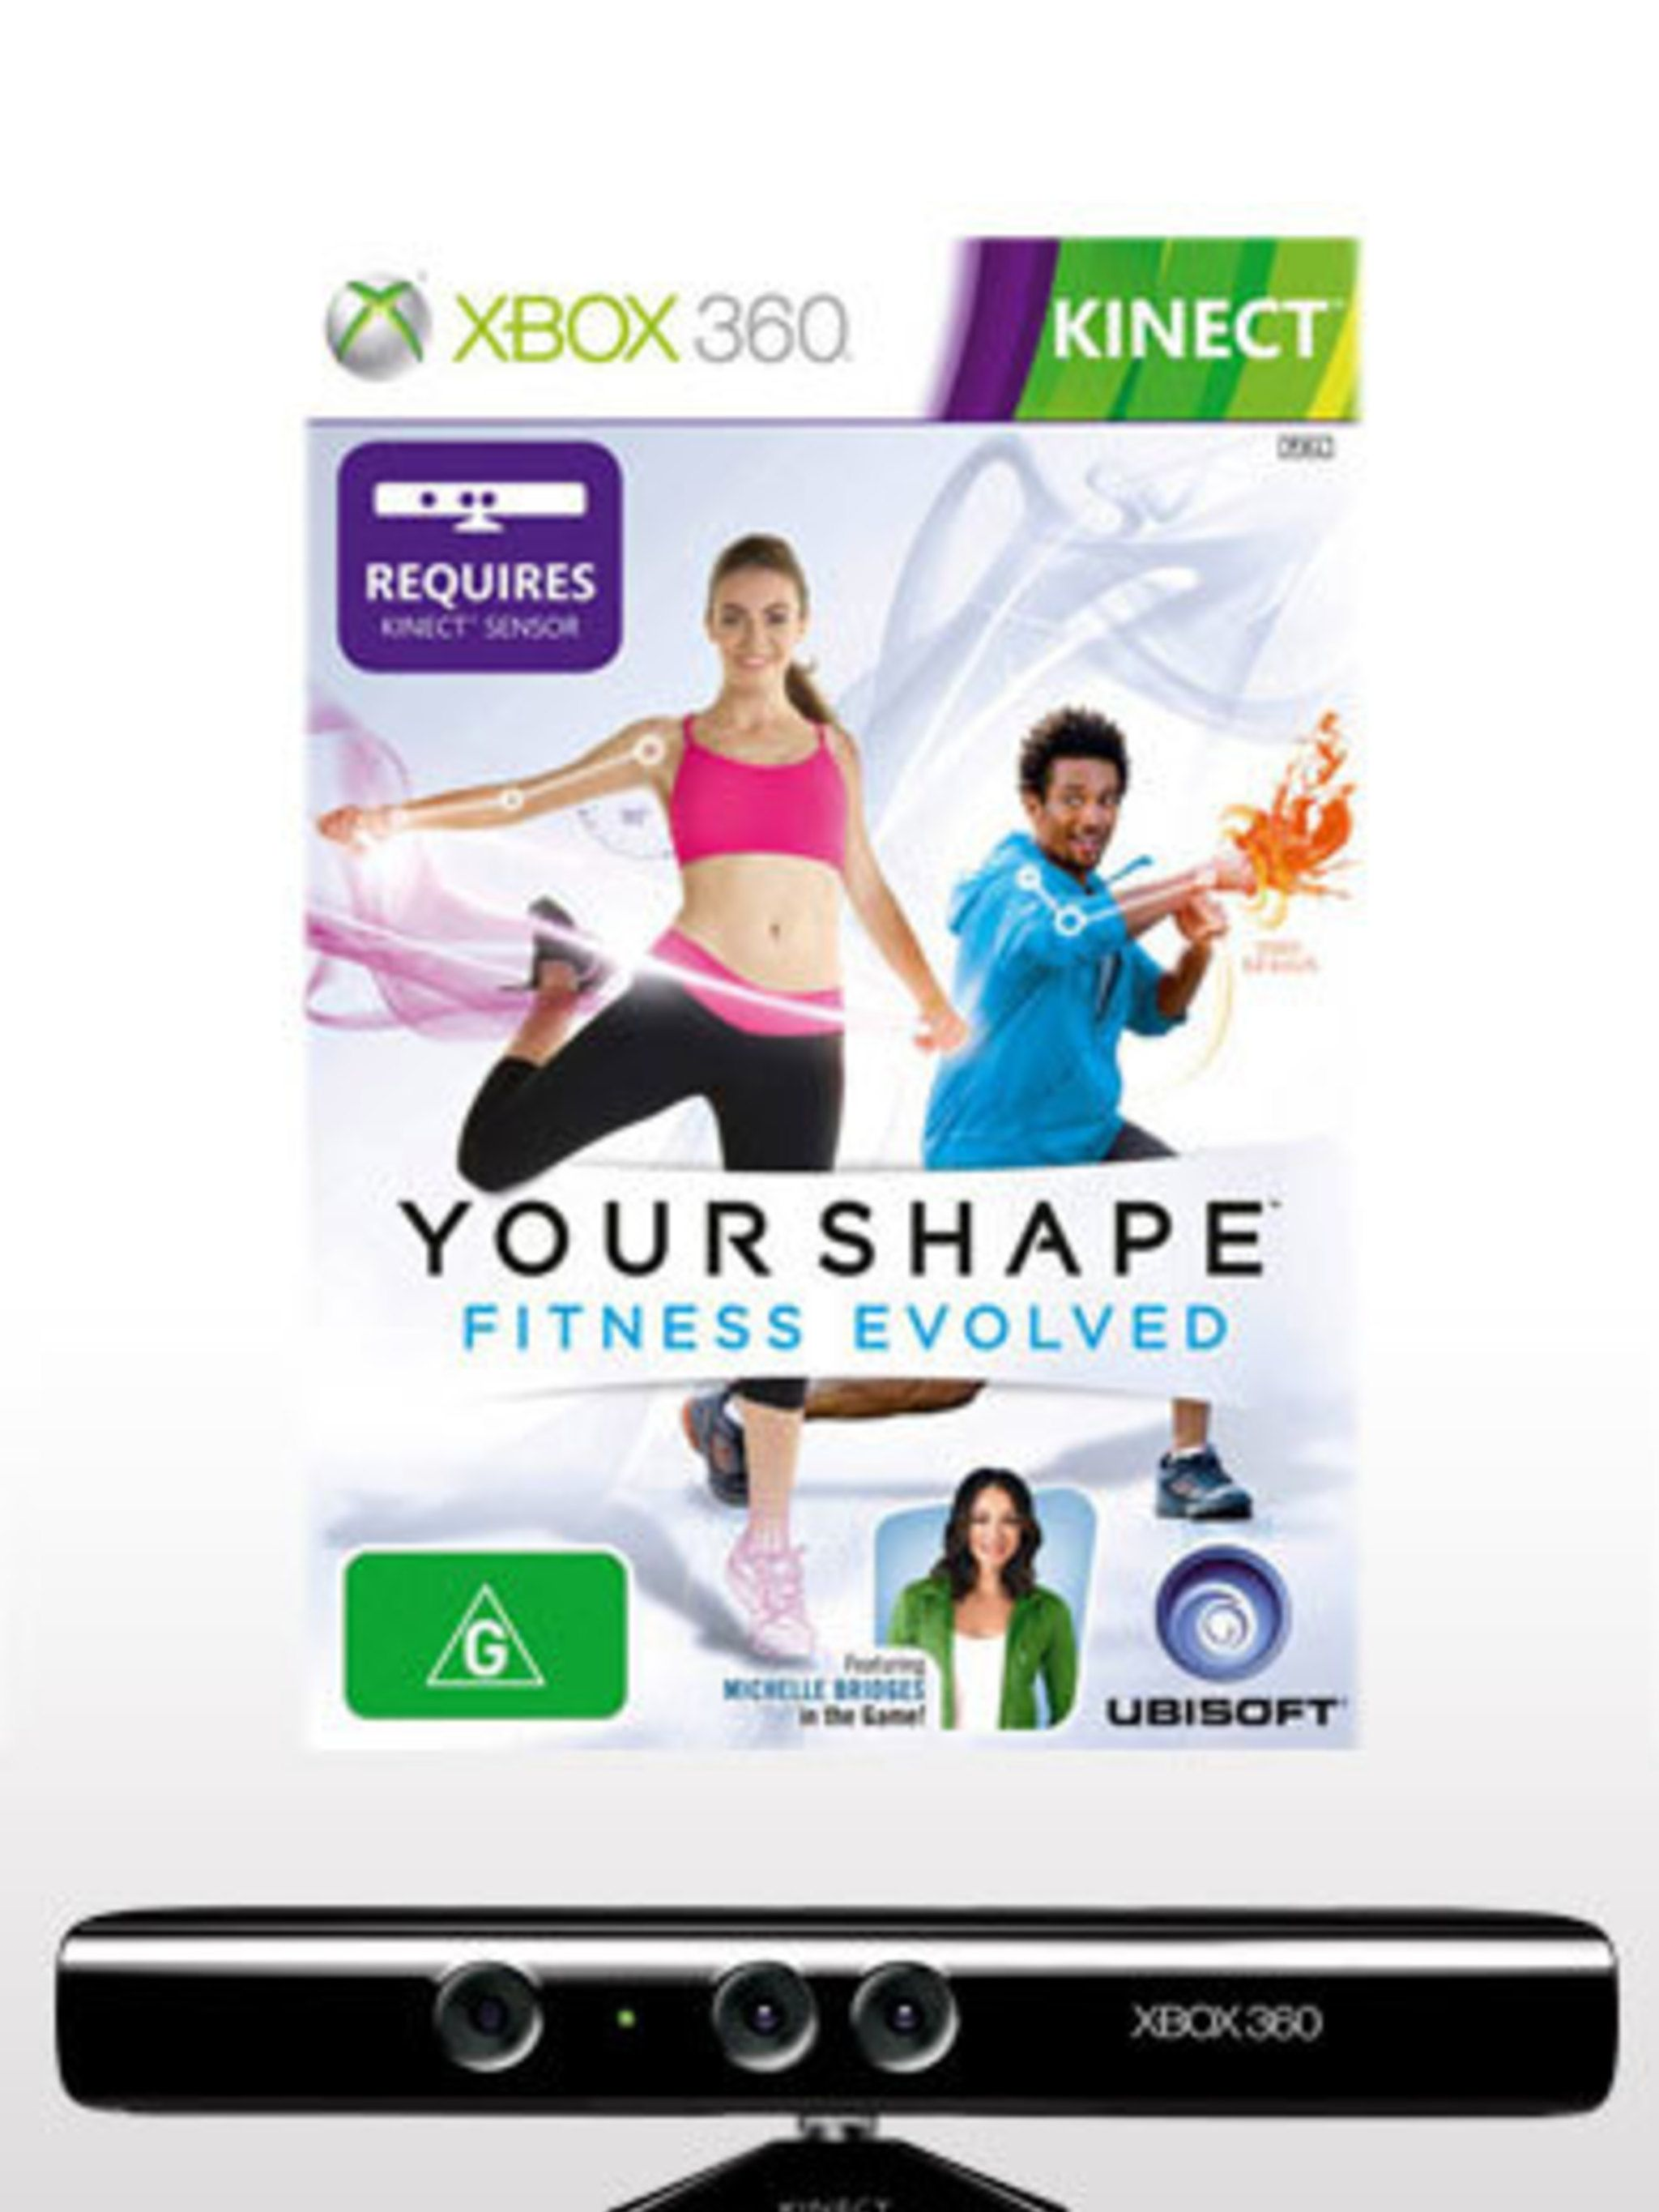 <p>If your boyfriend has an Xbox and you can tear him away from playing Call of Duty, the Kinect with Your Shape Fitness Evolved is well worth investing in.The Kinect tracks 50,000 points on your body so as you are working out the Xbox can feedback on any